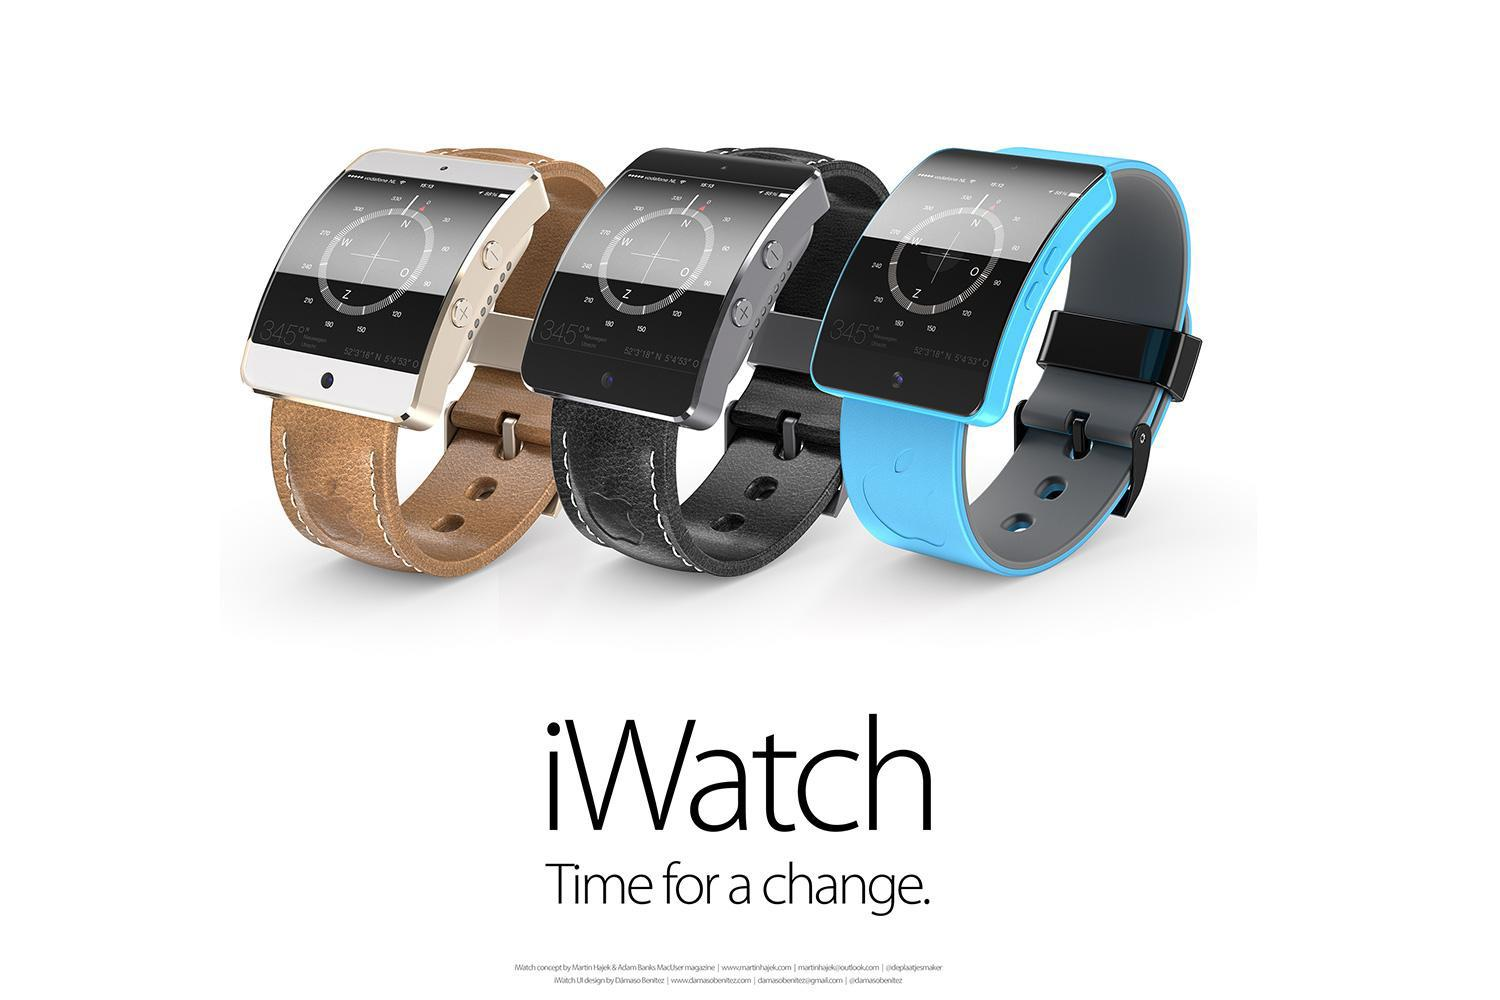 iWatch-nfc-wireless